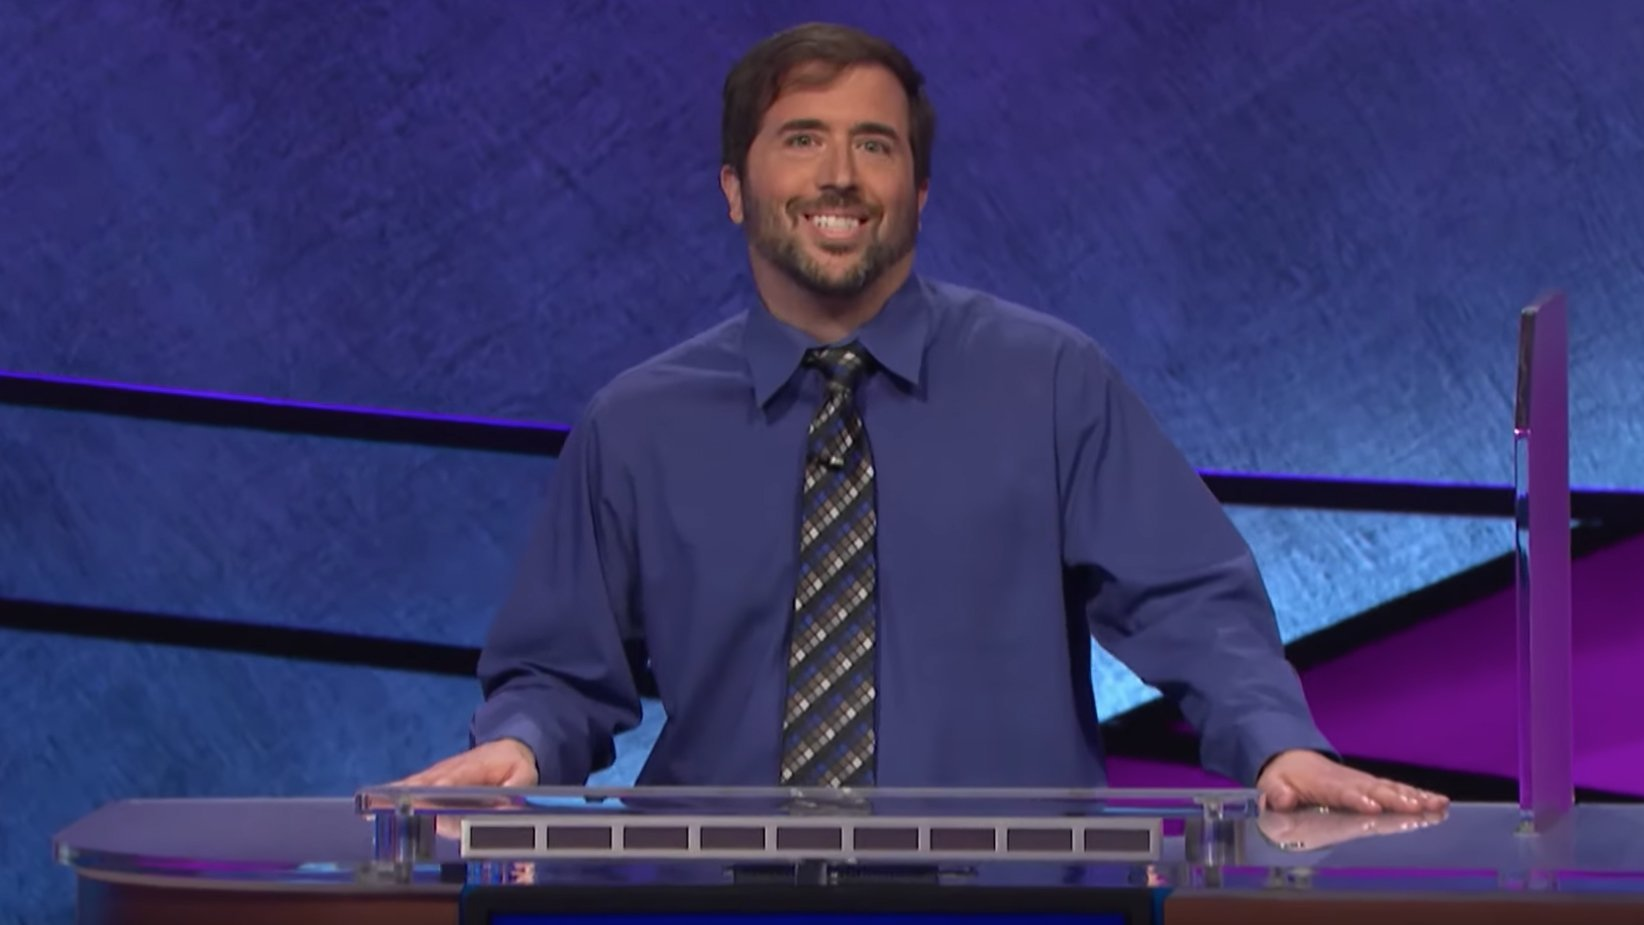 There's a new Jeopardy! contestant on a historic winning streak